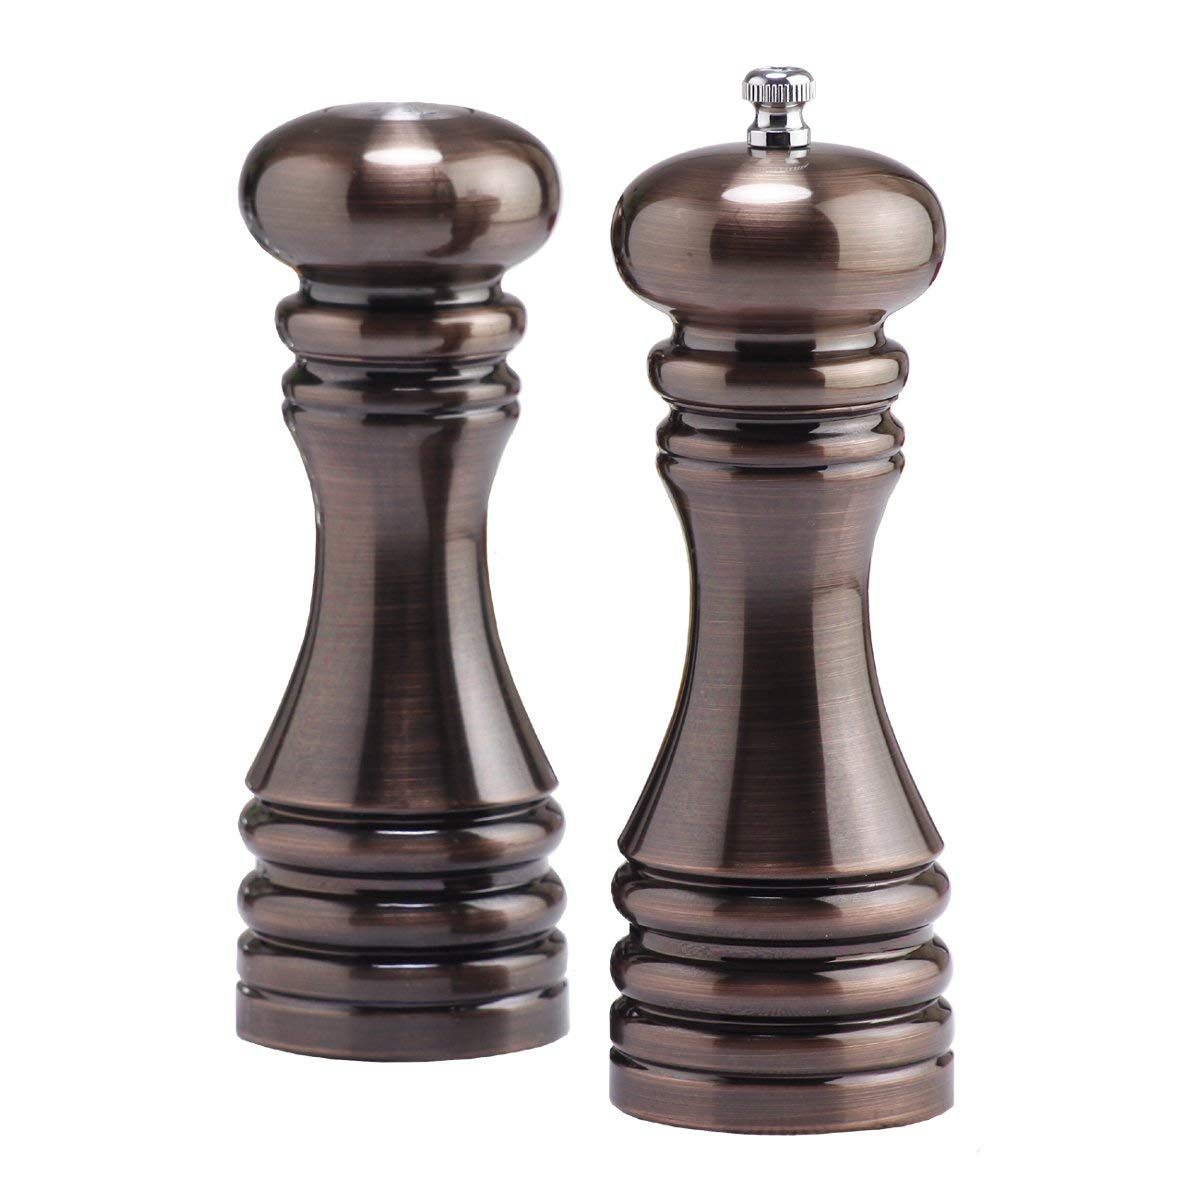 Chef Specialties 7 Inch Burnished Copper Pepper Mill and Salt Shaker Gift Set 90076